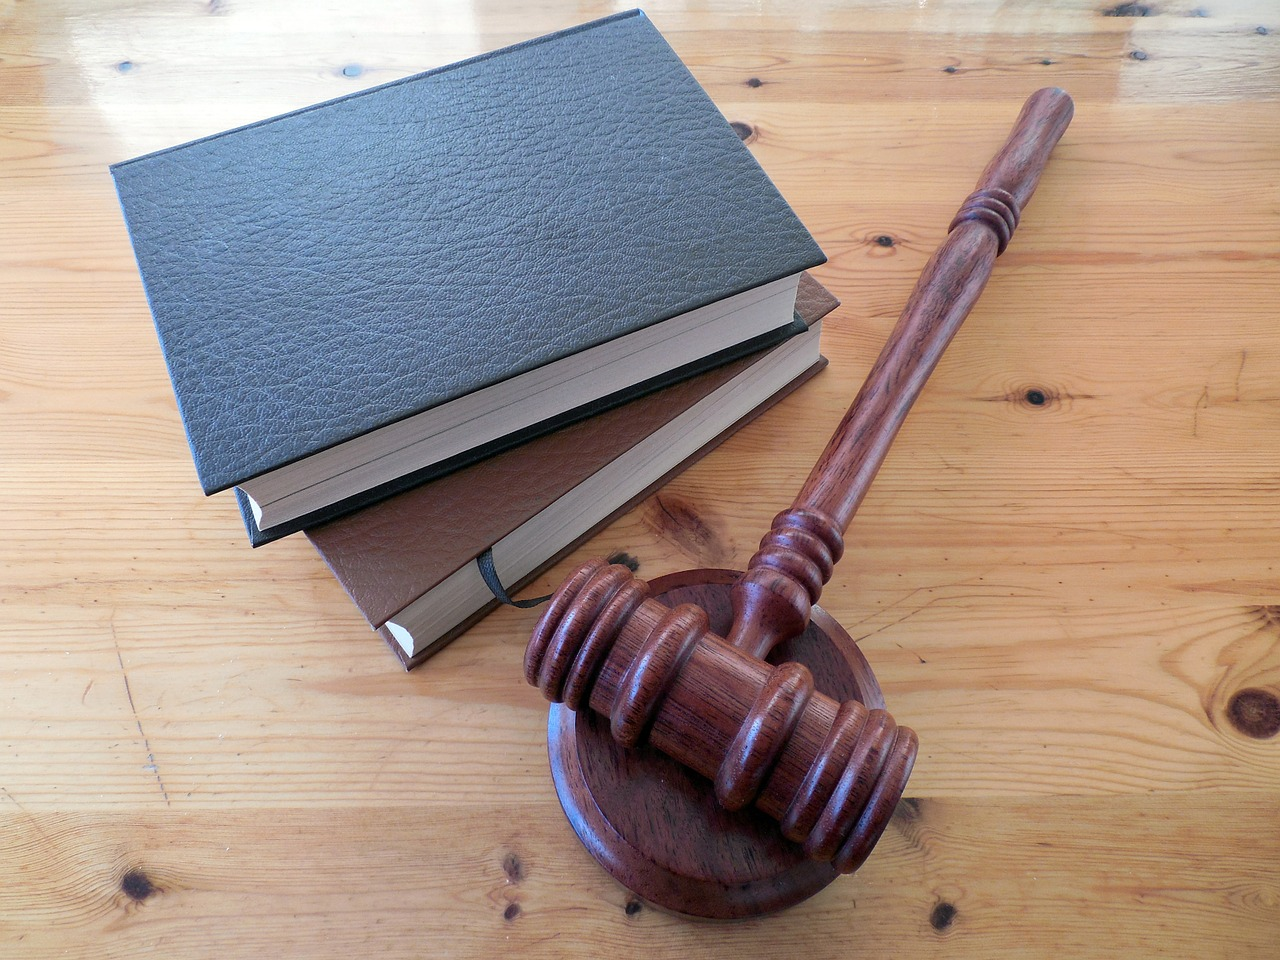 Two books and a gavel.